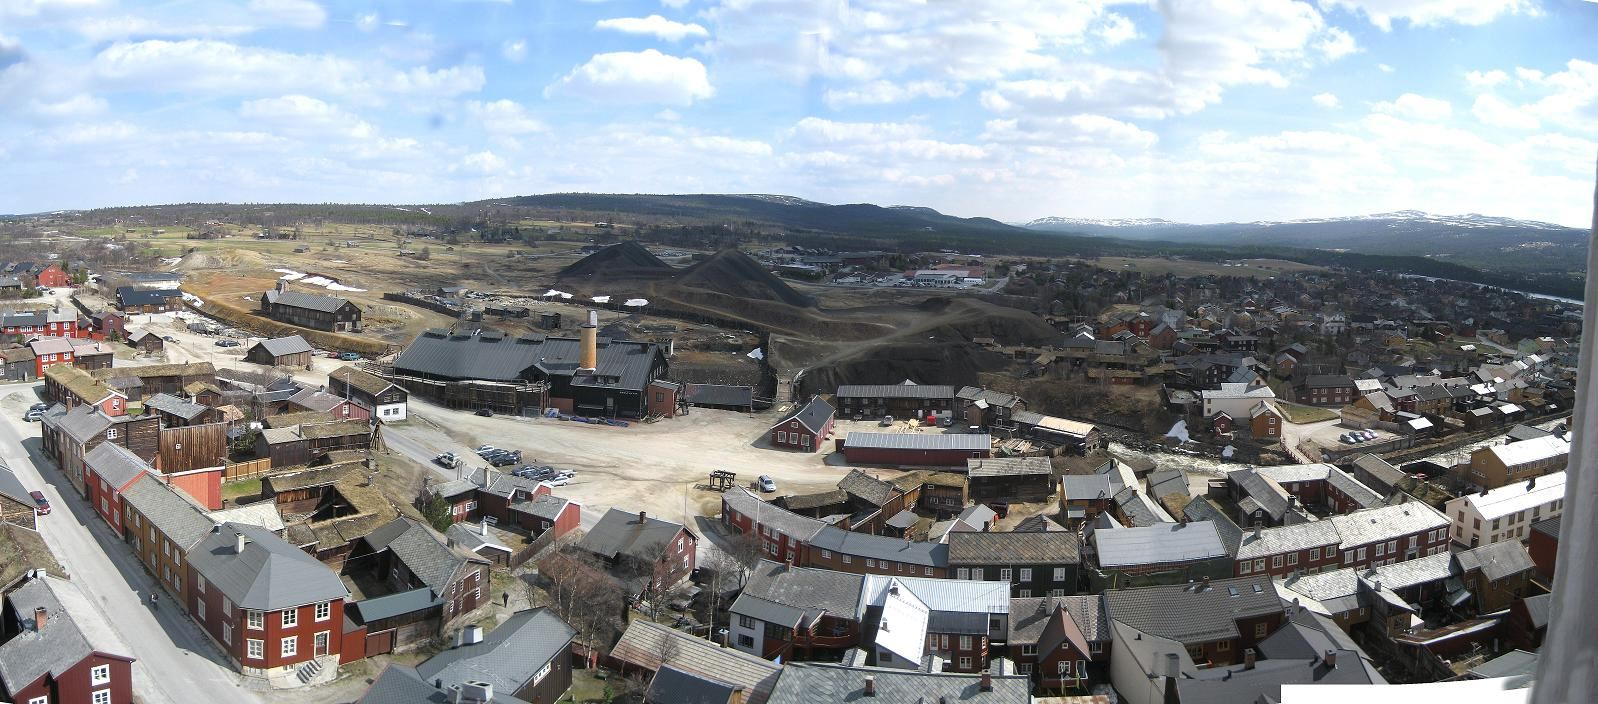 The Røros Museum – Smelthytta (The Smeltery)